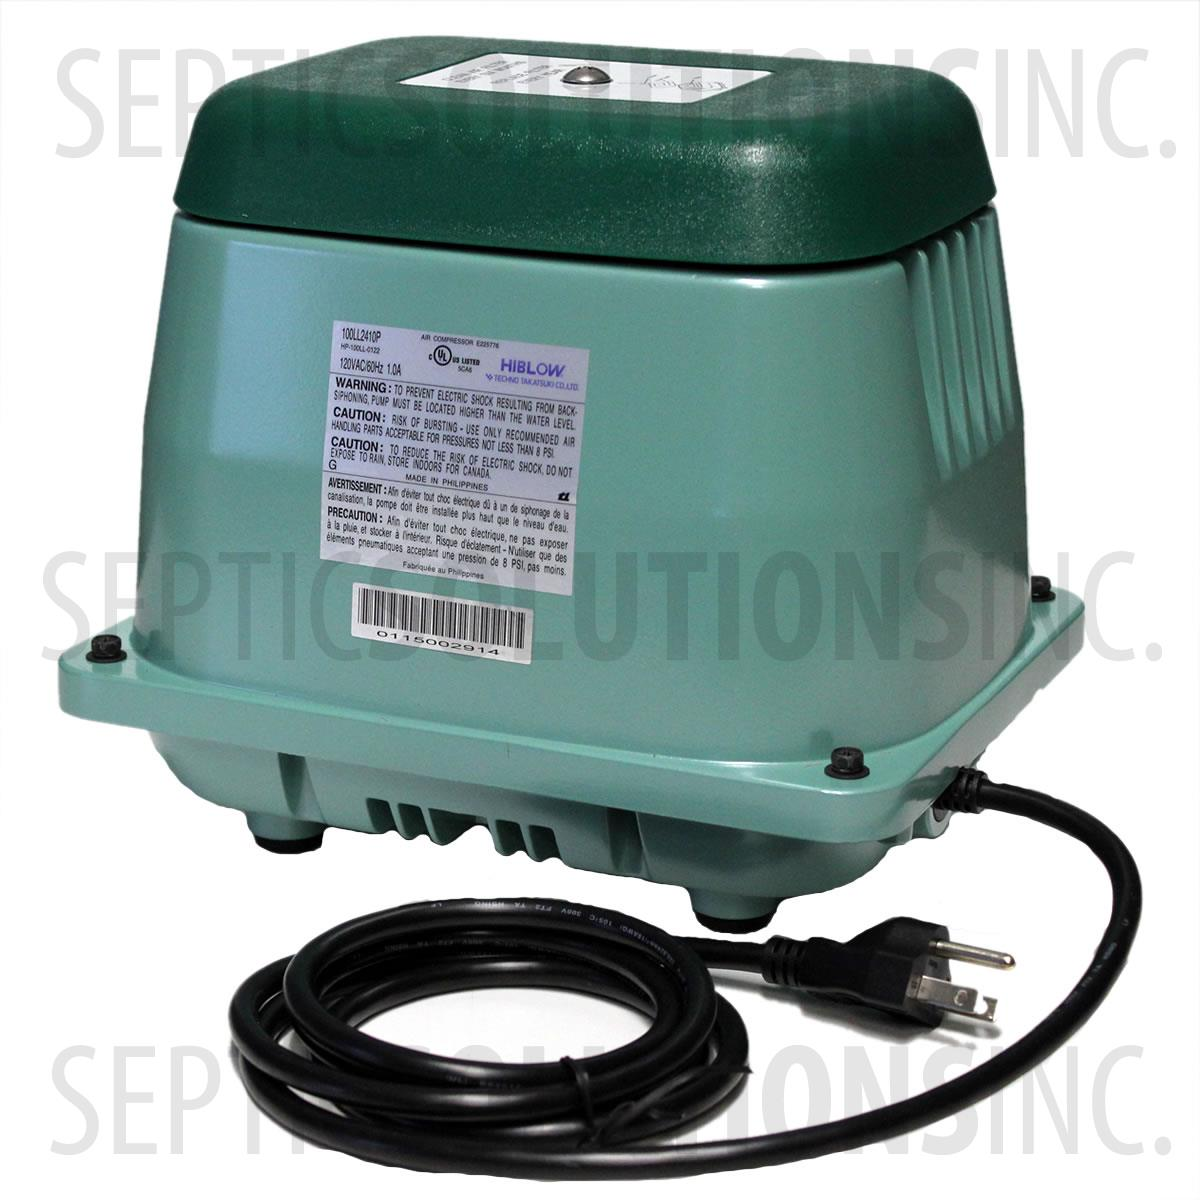 Fast Air free shipping New refrigerant vacuum pump suit for R410a,R407C,R134a,R12,R22 refrigerate 220V